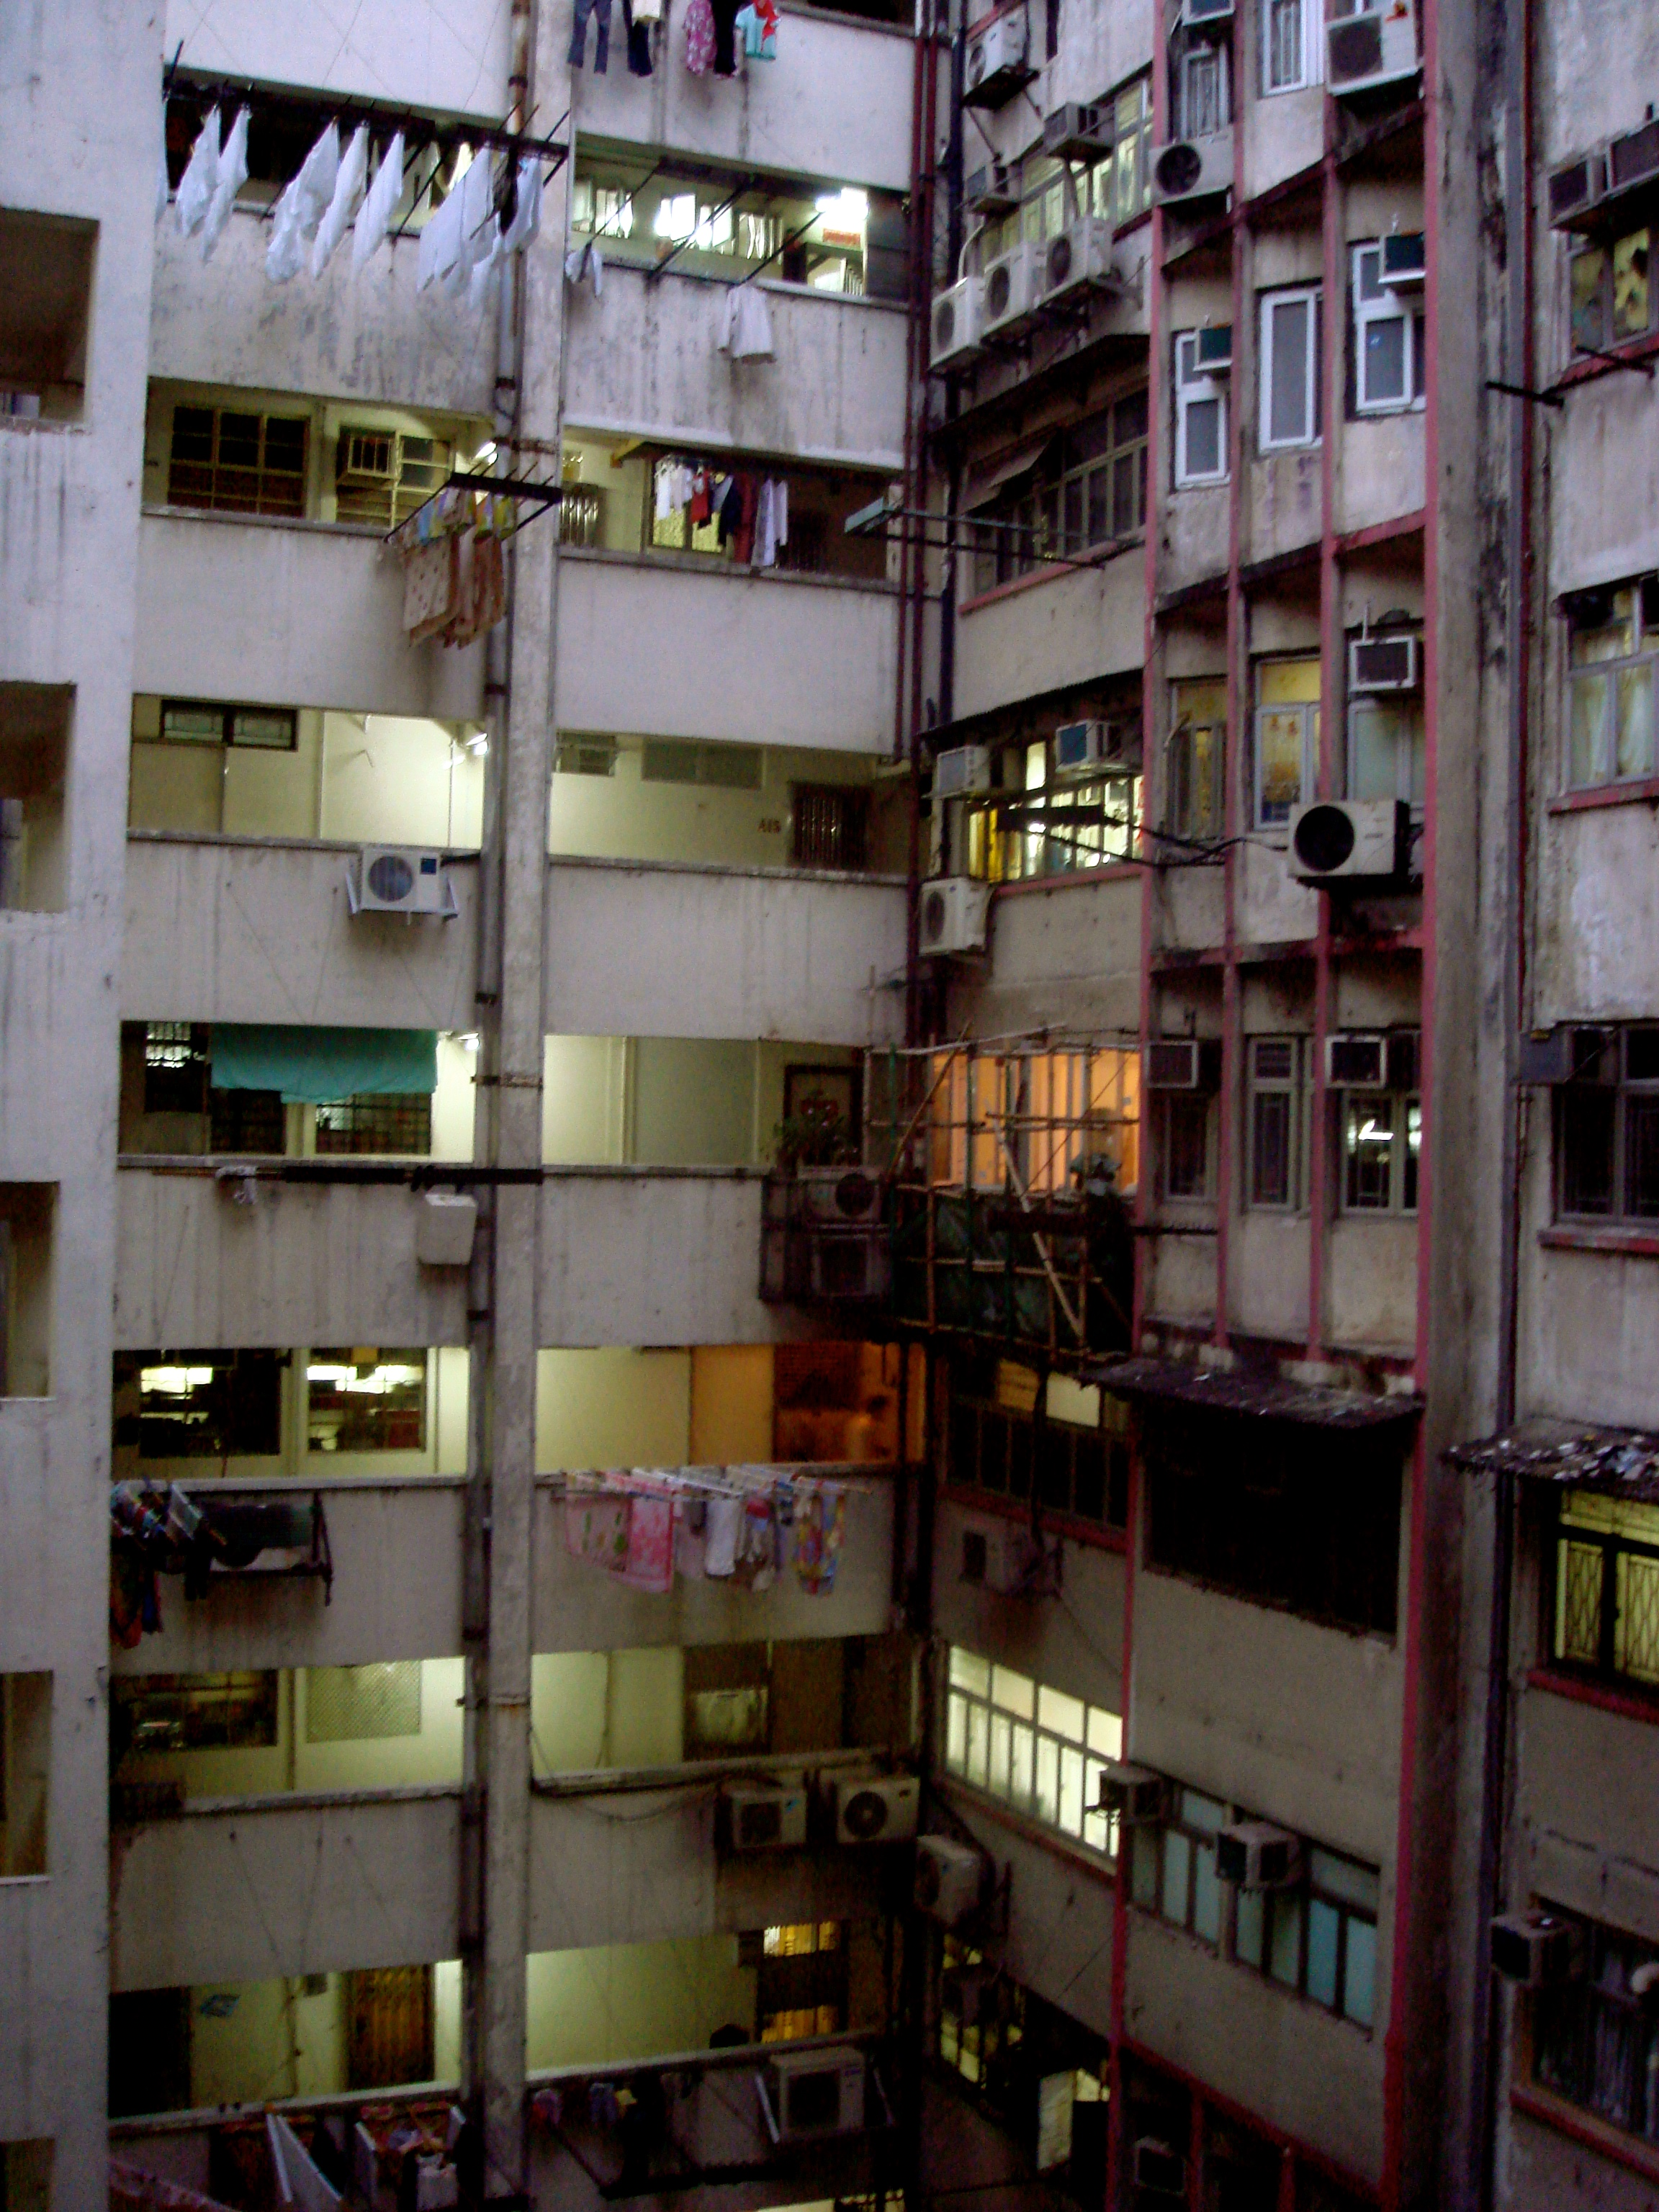 One of the tenement buildings in Kowloon